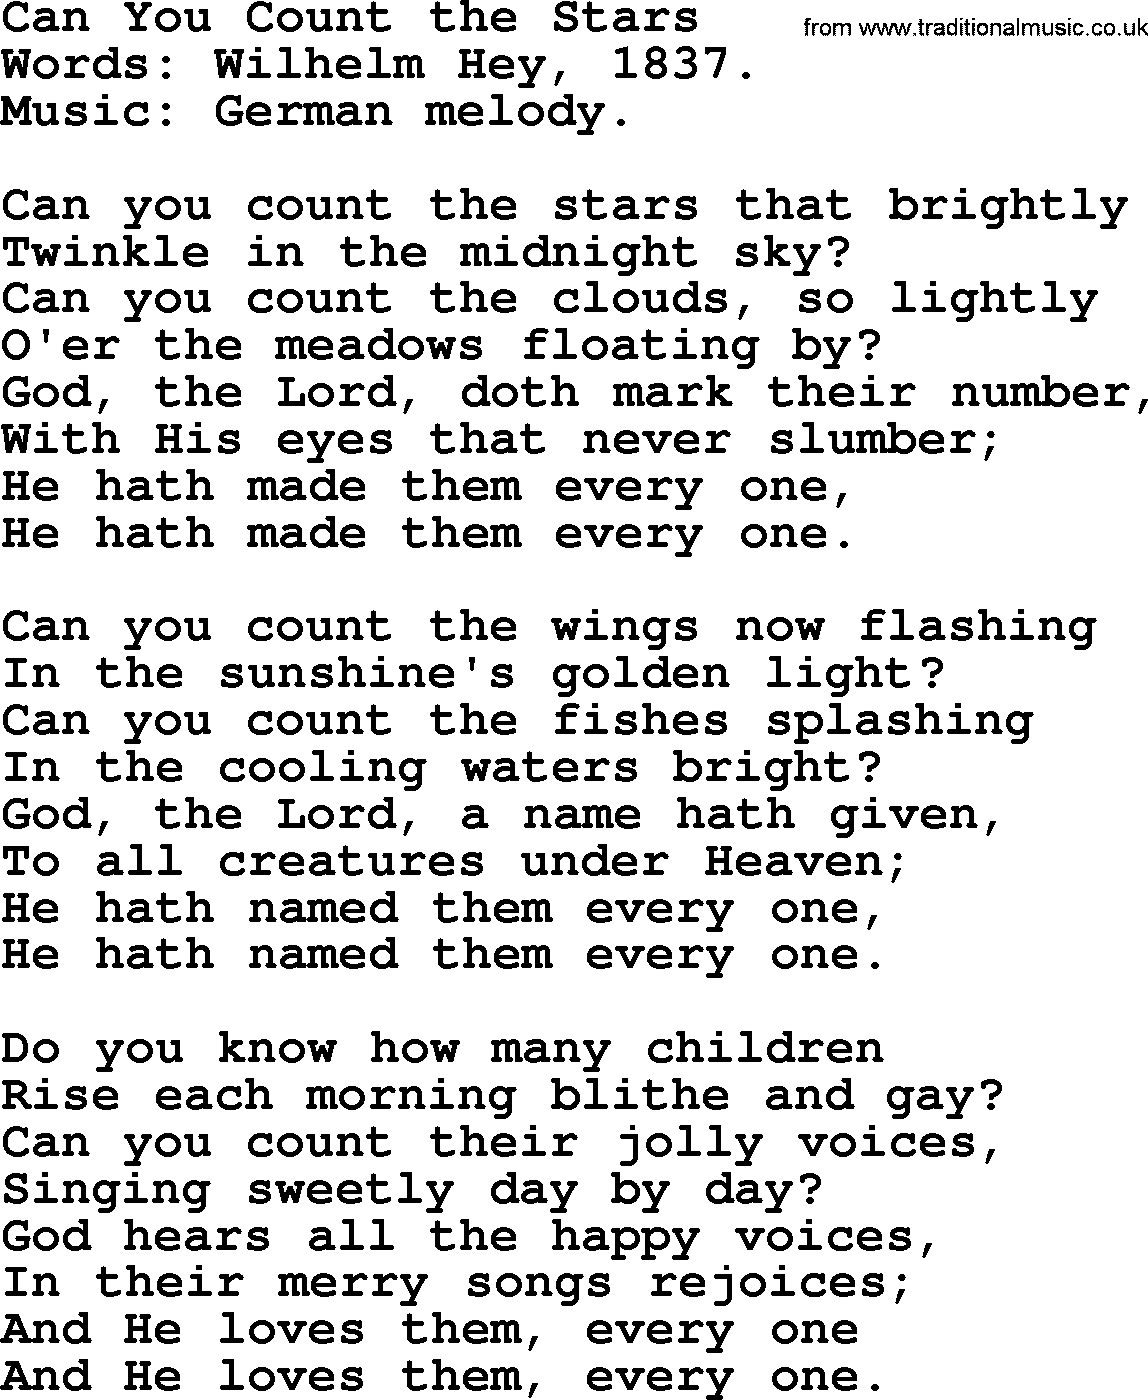 Wedding Hymns and songs: Can You Count The Stars.txt - lyrics ...